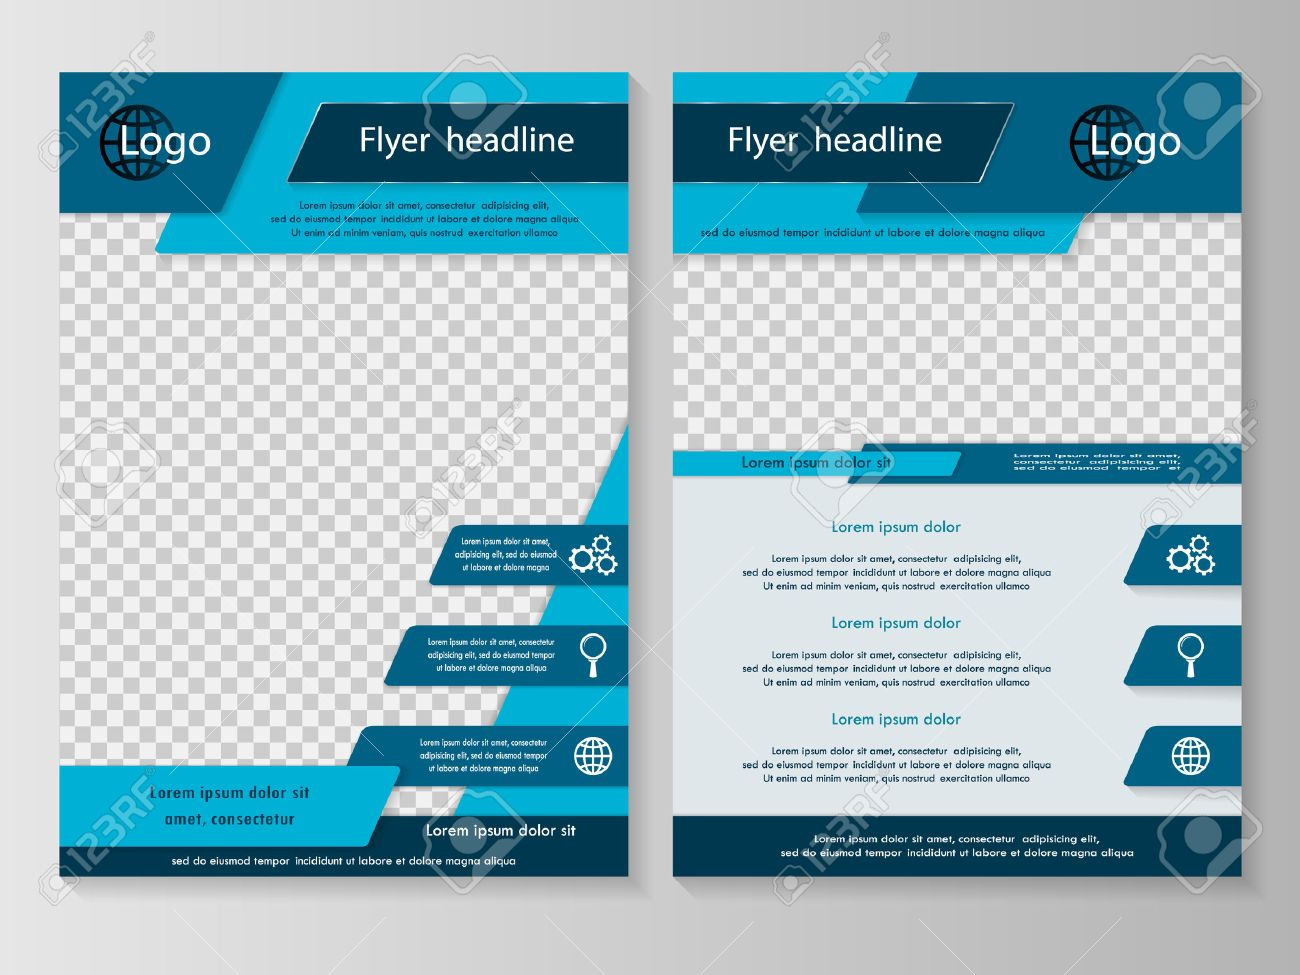 vector flyer template design front page and back page vector vector flyer template design front page and back page business brochure or cover